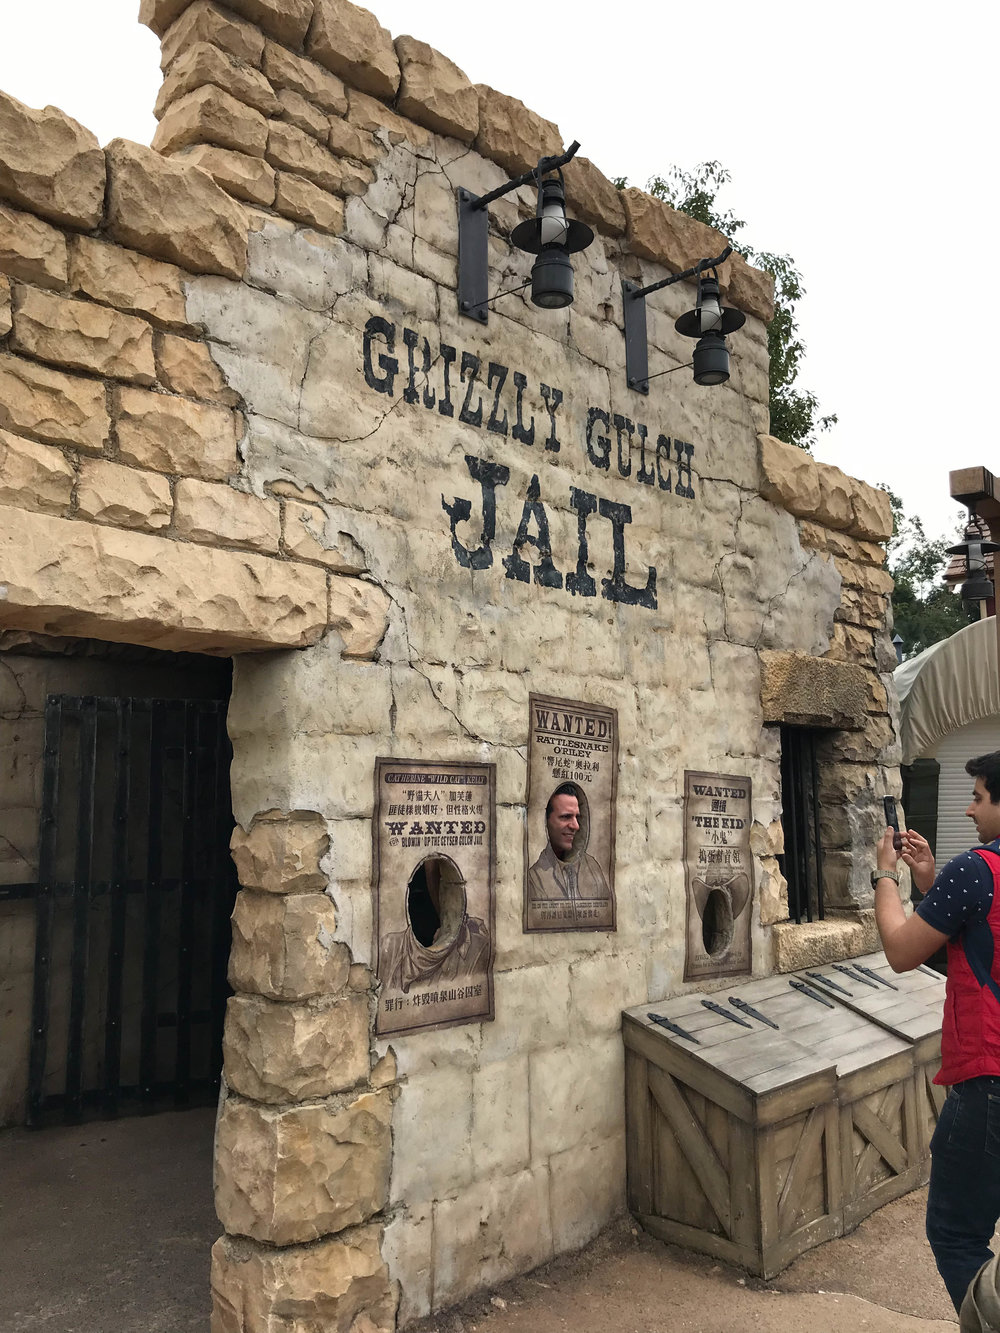 Hong Kong Disneyland Grizzly Gulch Jail